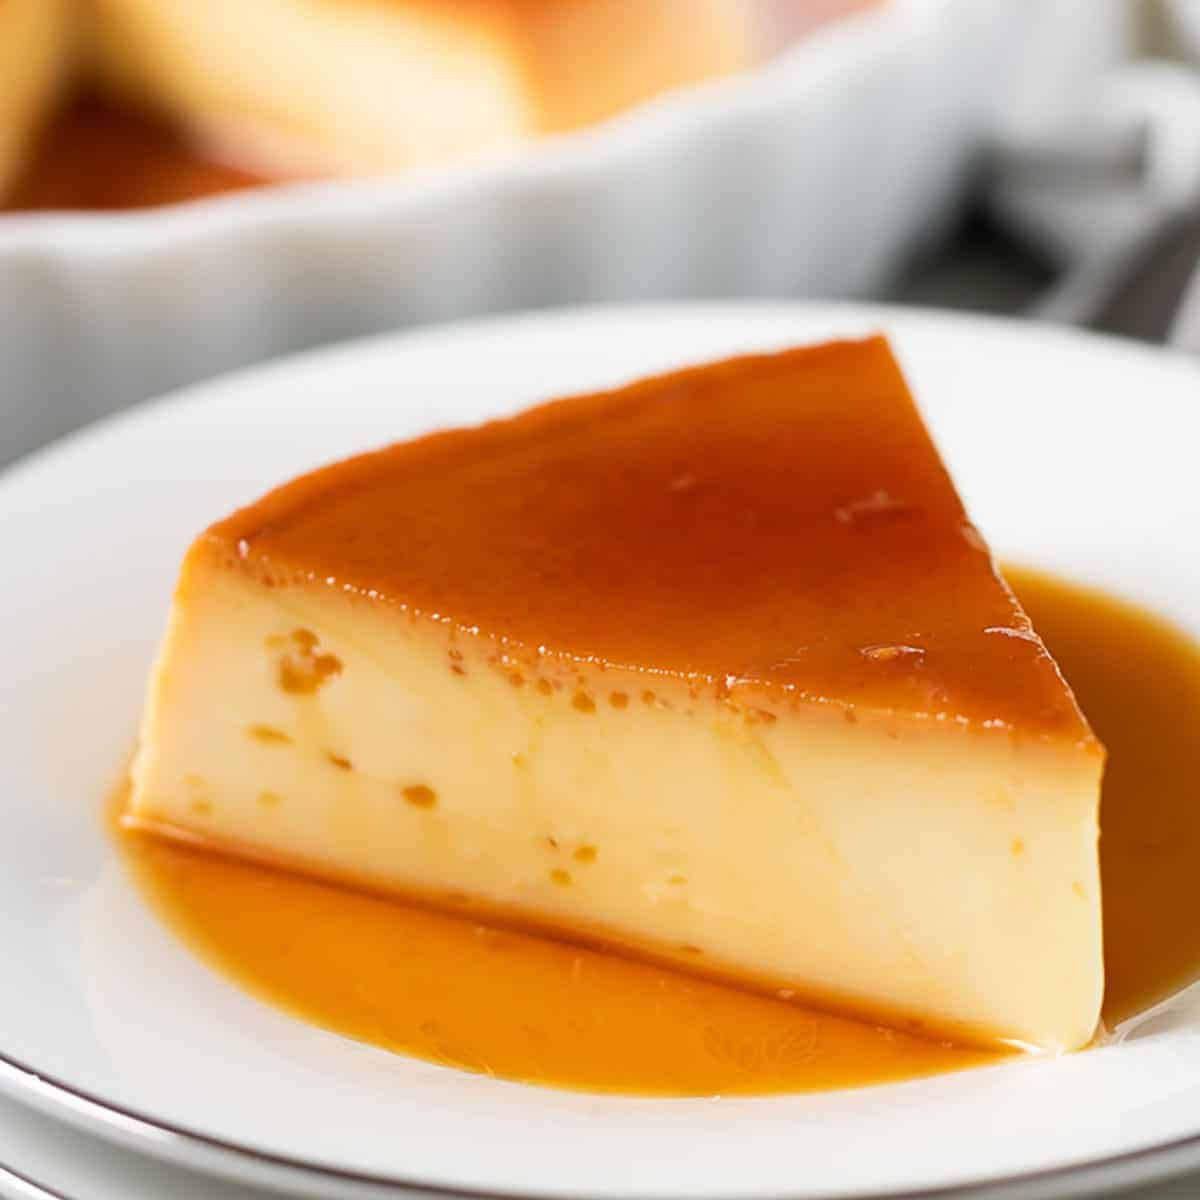 Instant Pot flan slice with caramel sauce on a white plate.